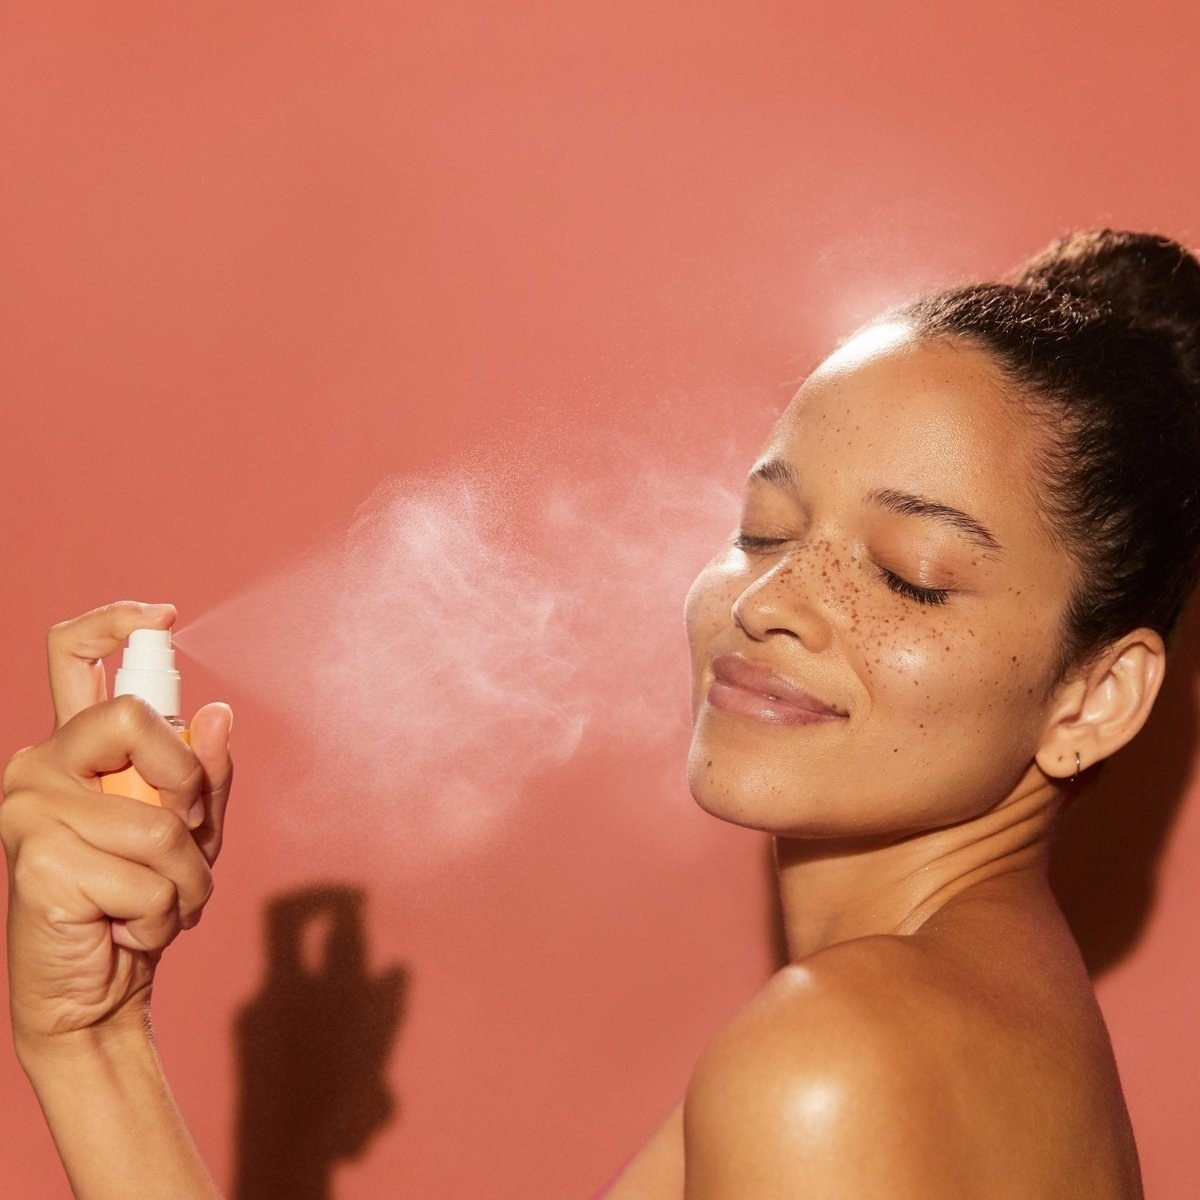 model spraying the mist on her face